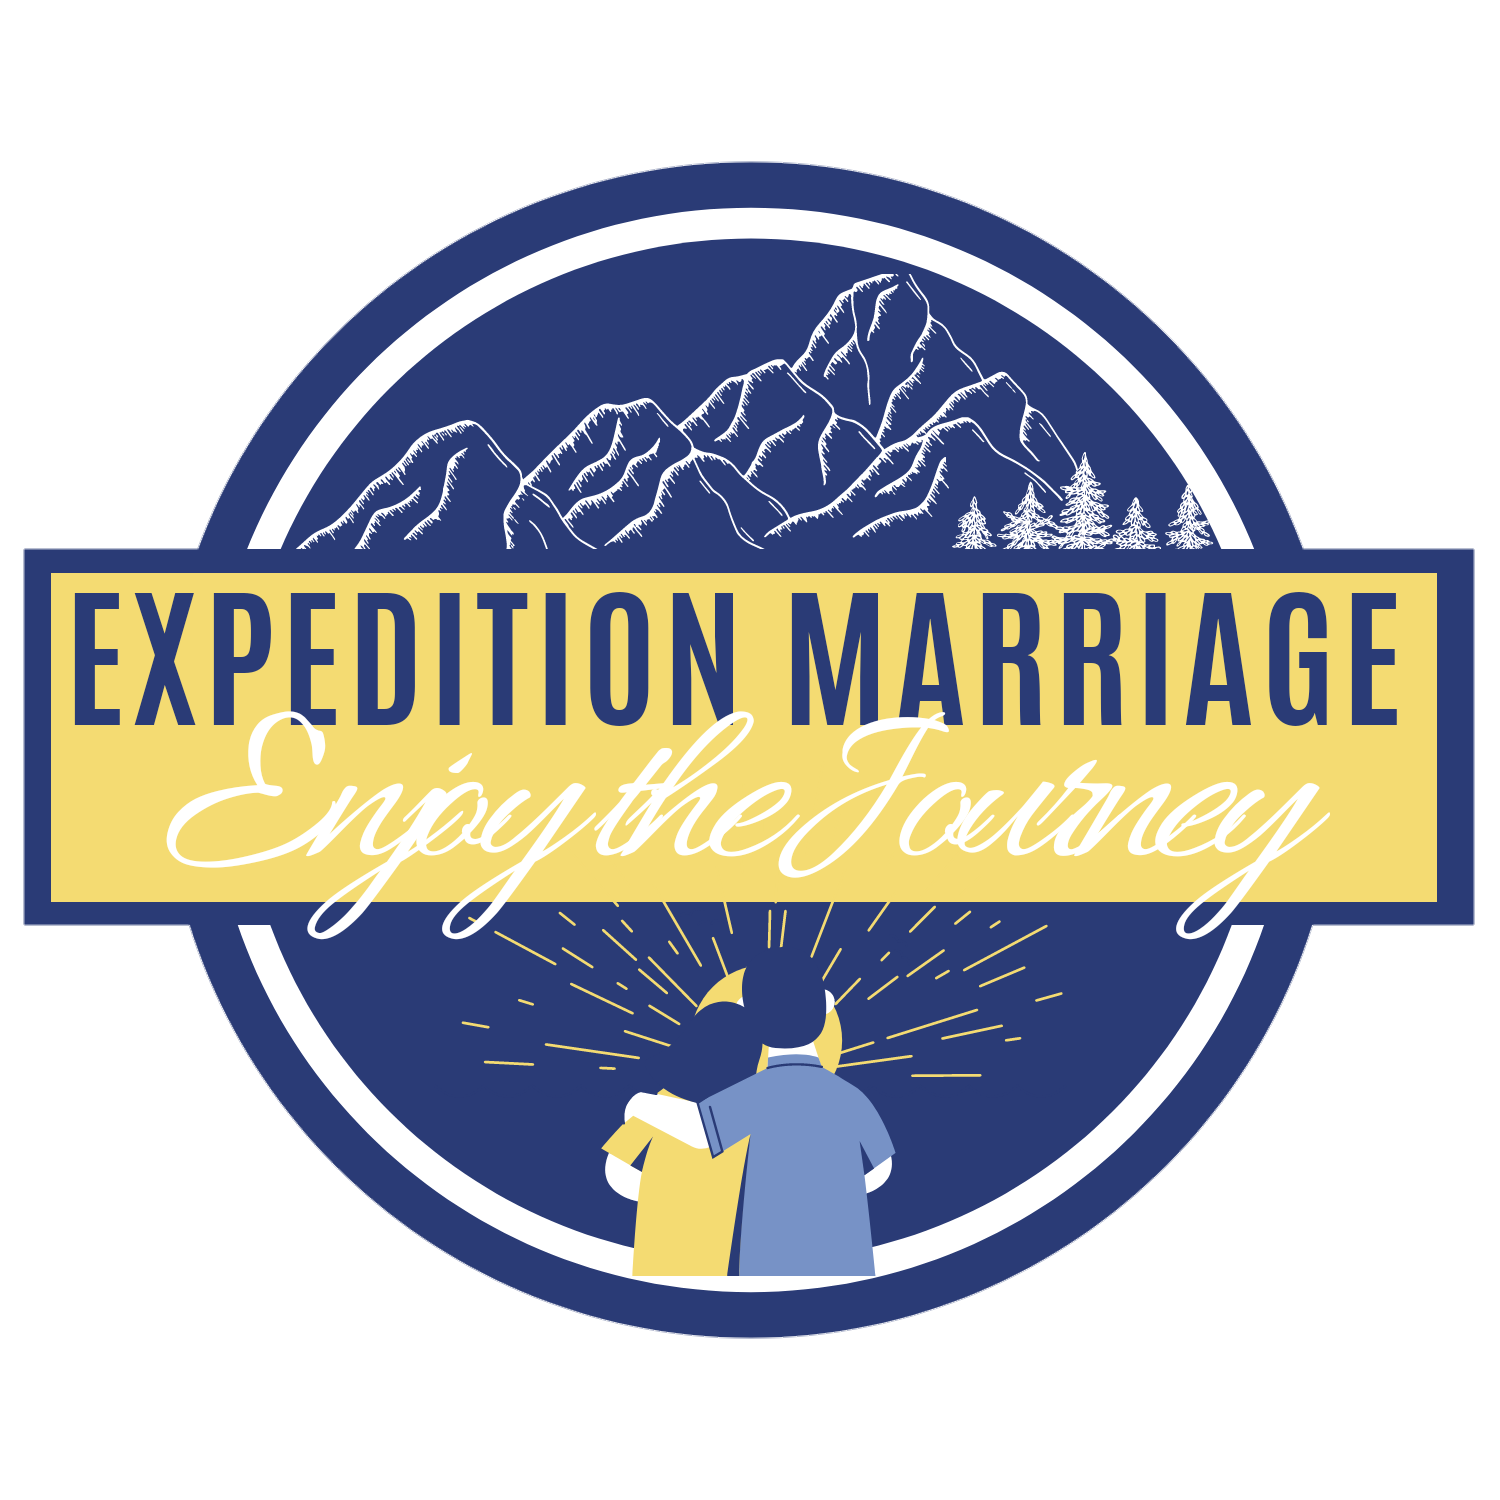 Expedition Marriage